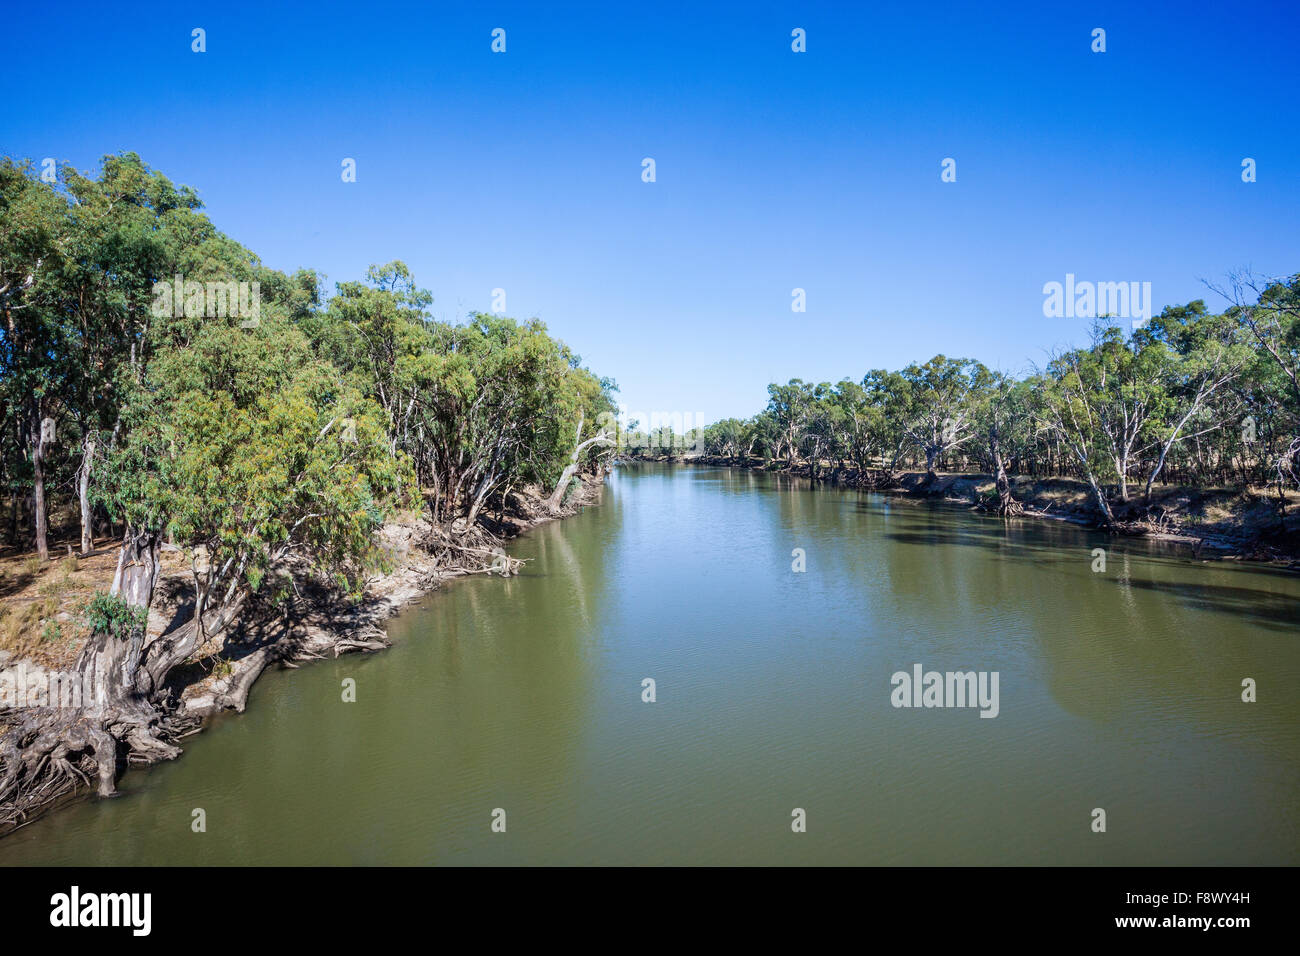 Australia, New South Wales, western Riverina Region, Murrumbidgee River at Hay - Stock Image